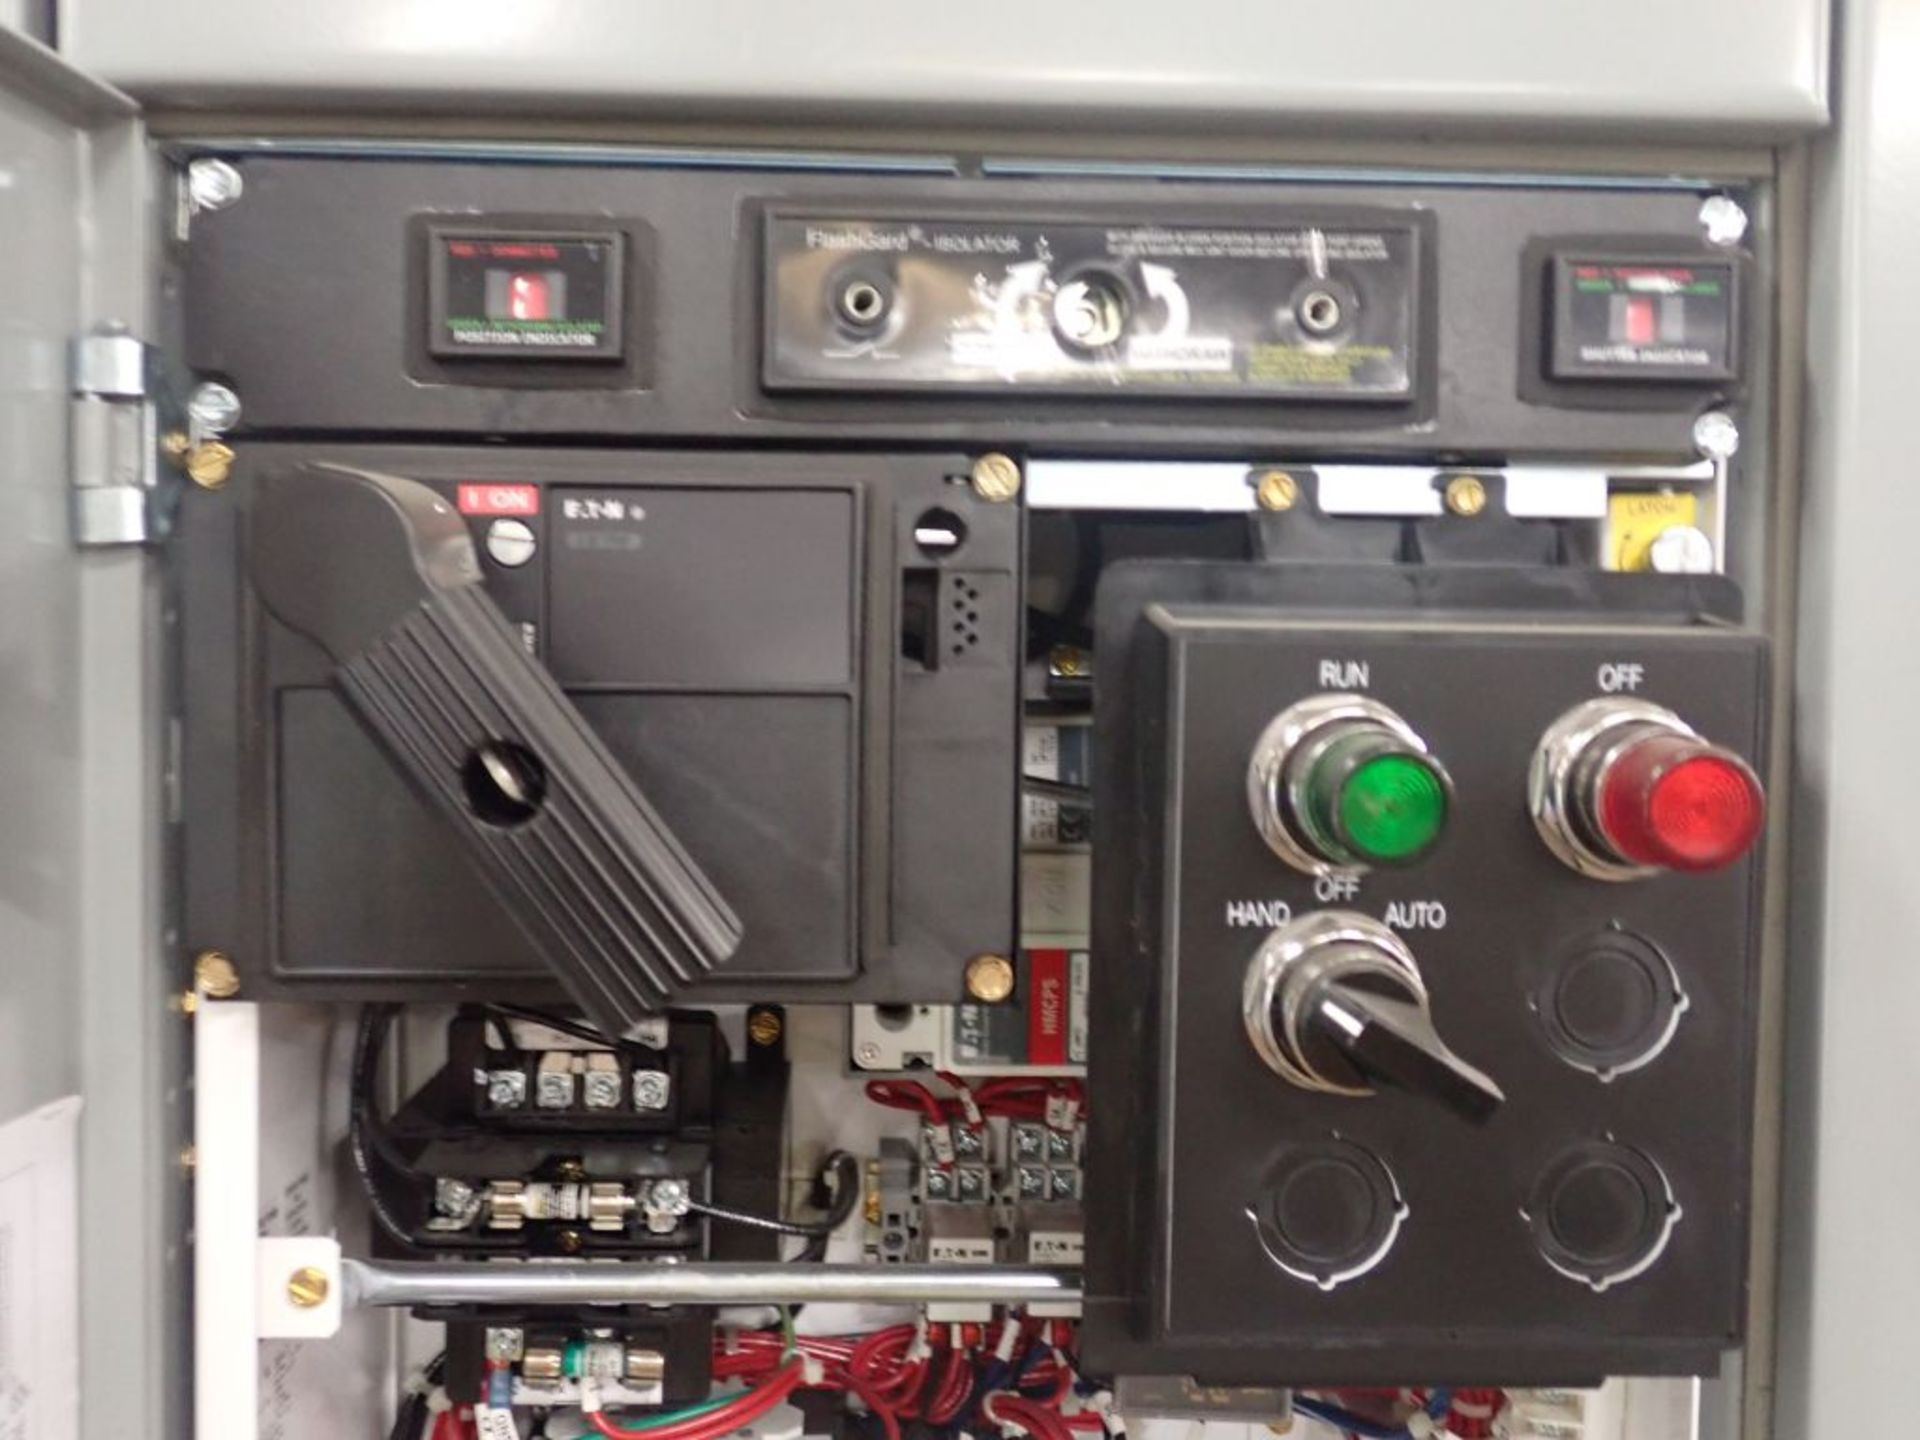 Eaton Freedom 2100 Series Motor Control Center   (2) F206-15A-10HP; (2) SVX900-50A, with Eaton AF - Image 36 of 48